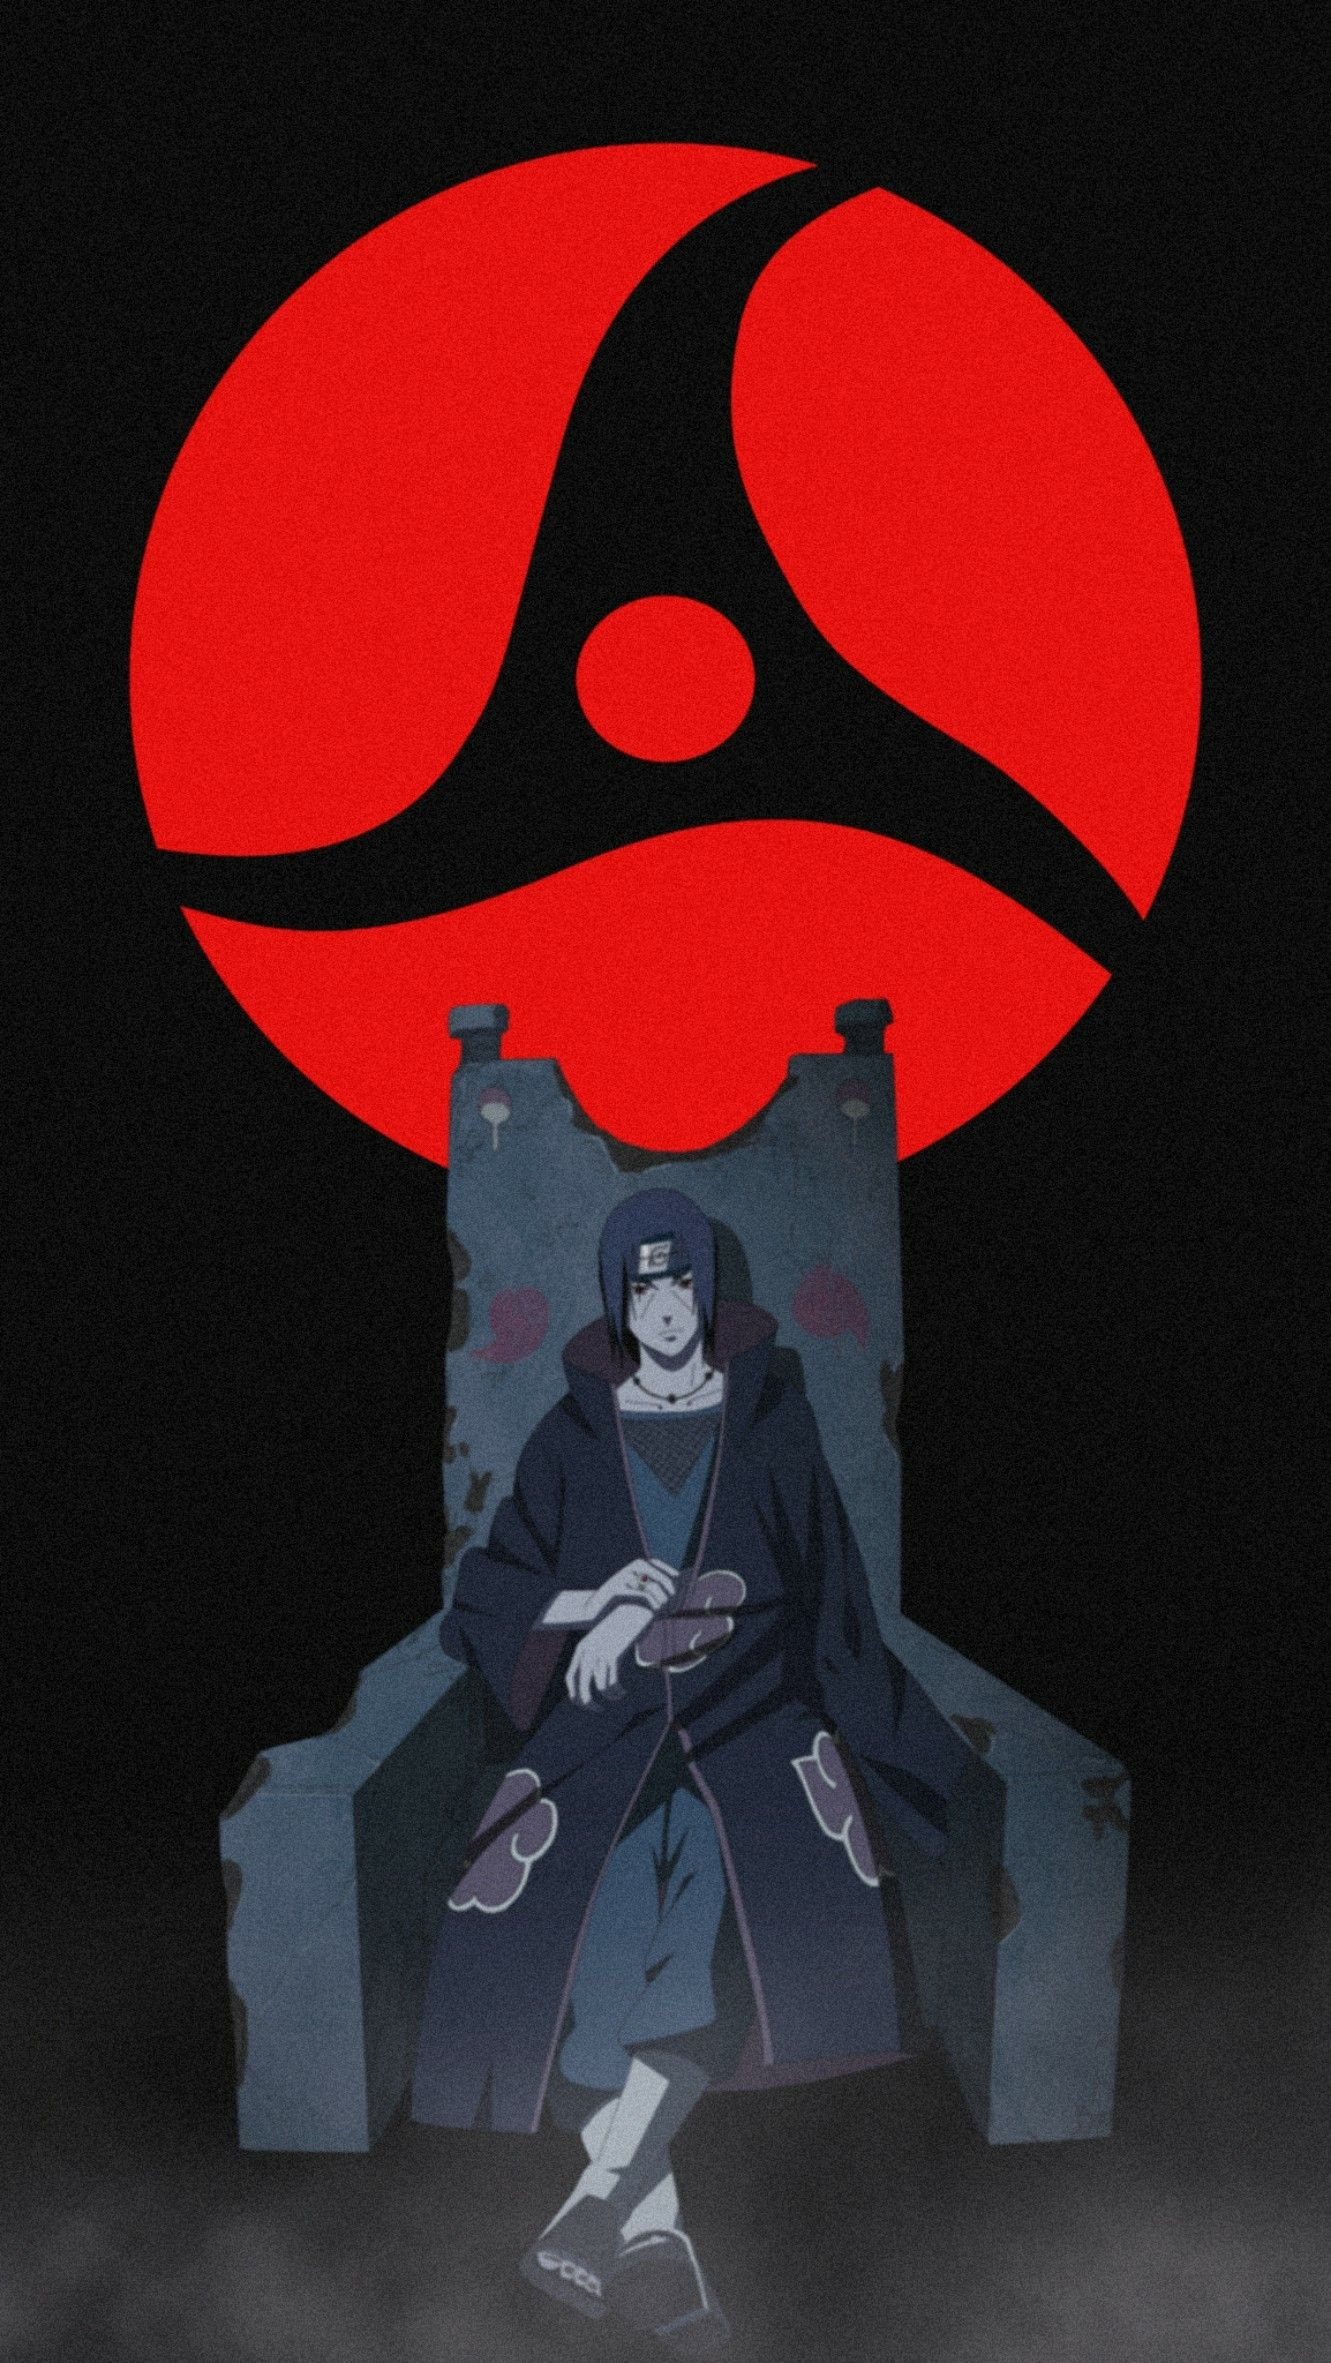 Itachi Uchiha Wallpaper Hd Instagram Vargz7 Itachi Uchiha Art Wallpaper Naruto Shippuden Naruto Drawings